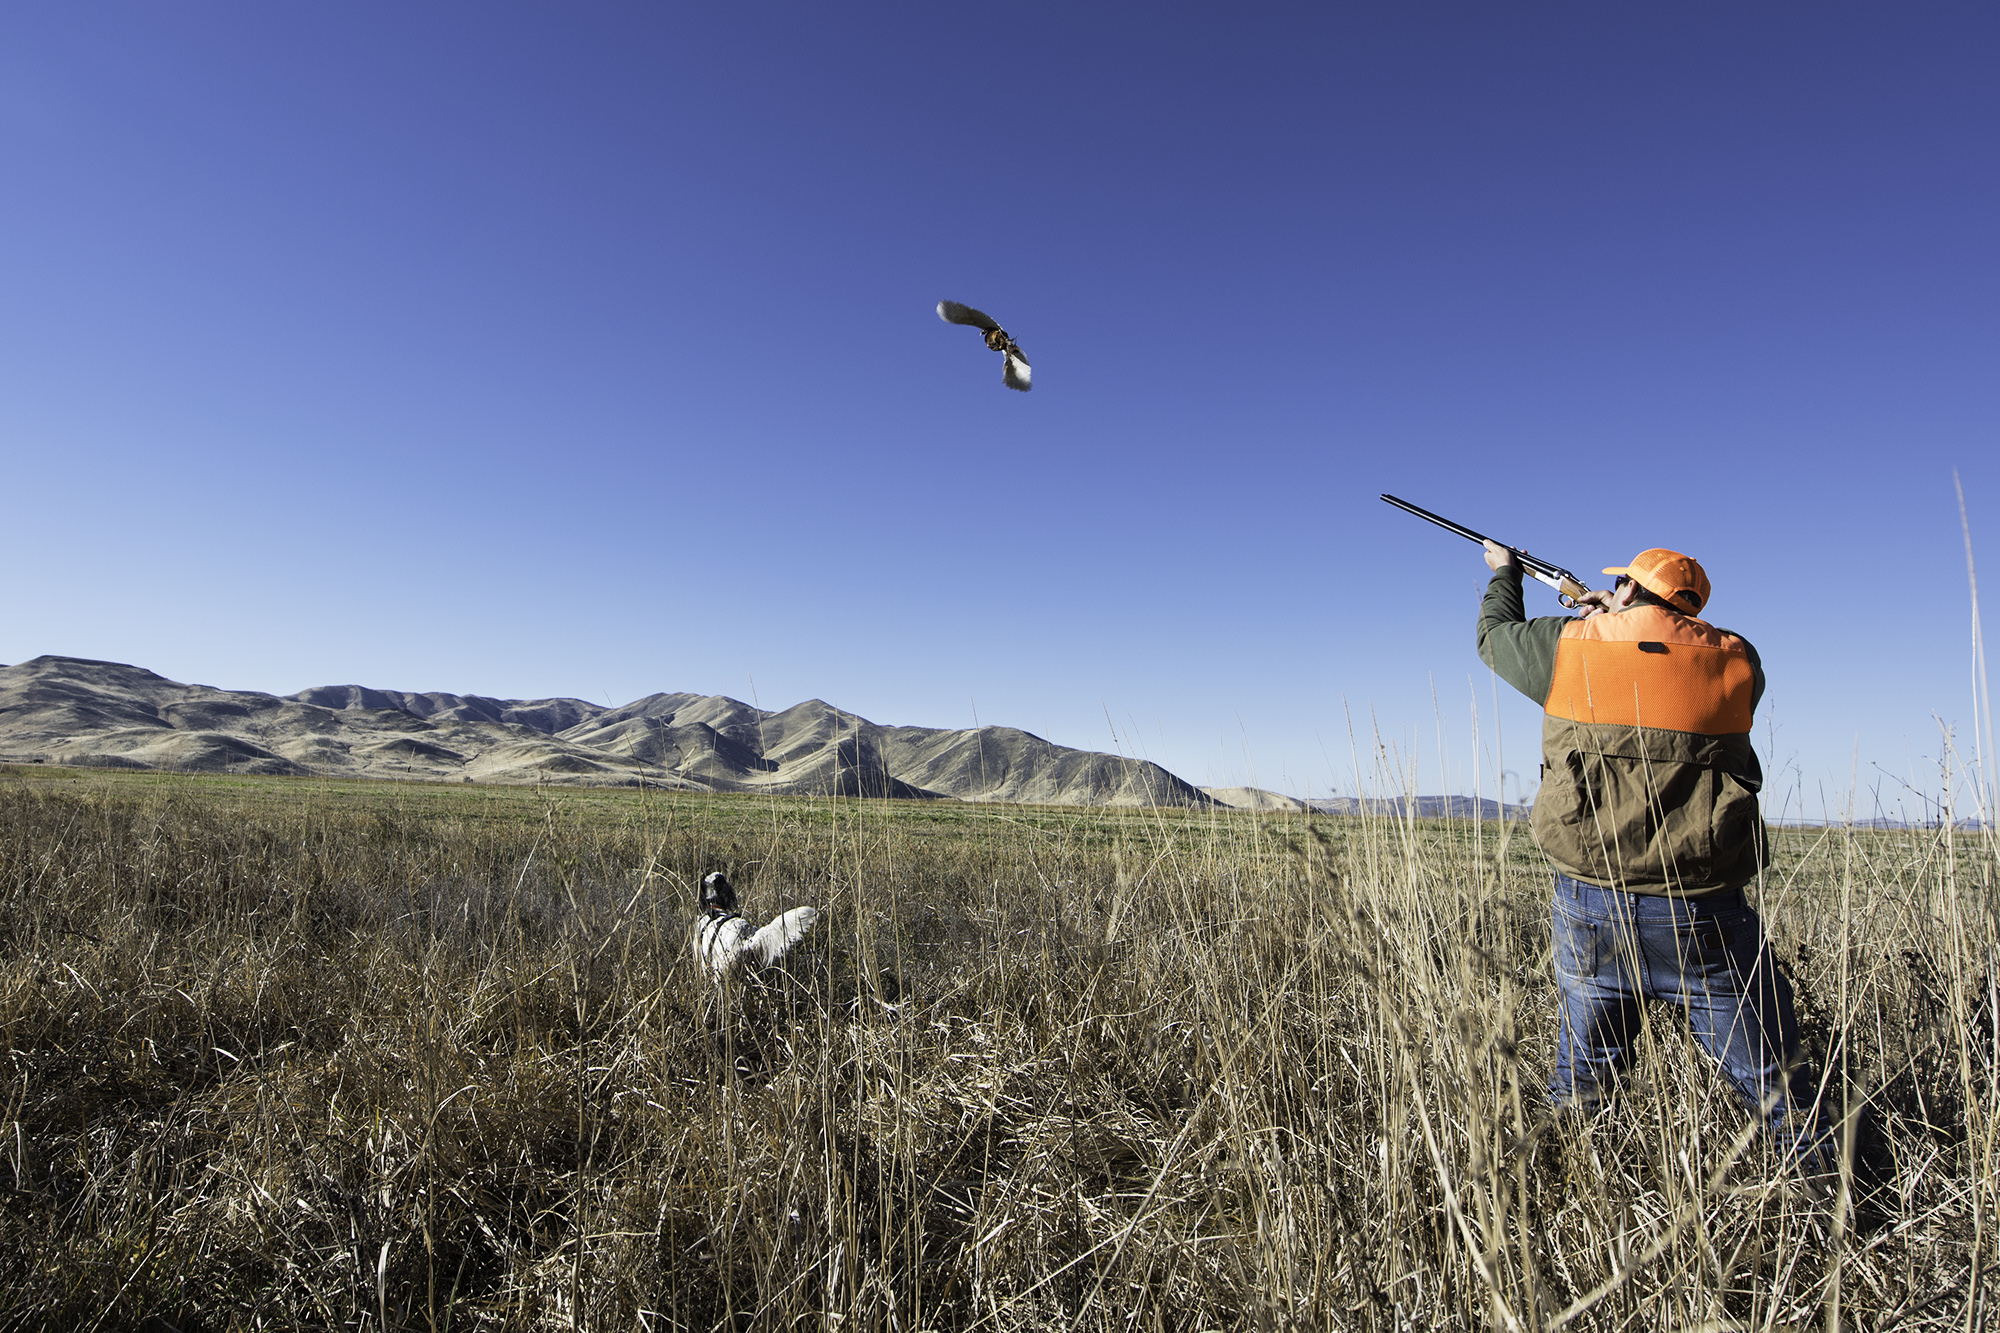 Bring your own dog or hunt over one of our pointers, setters or Labradors. Either way, cagey roosters await!